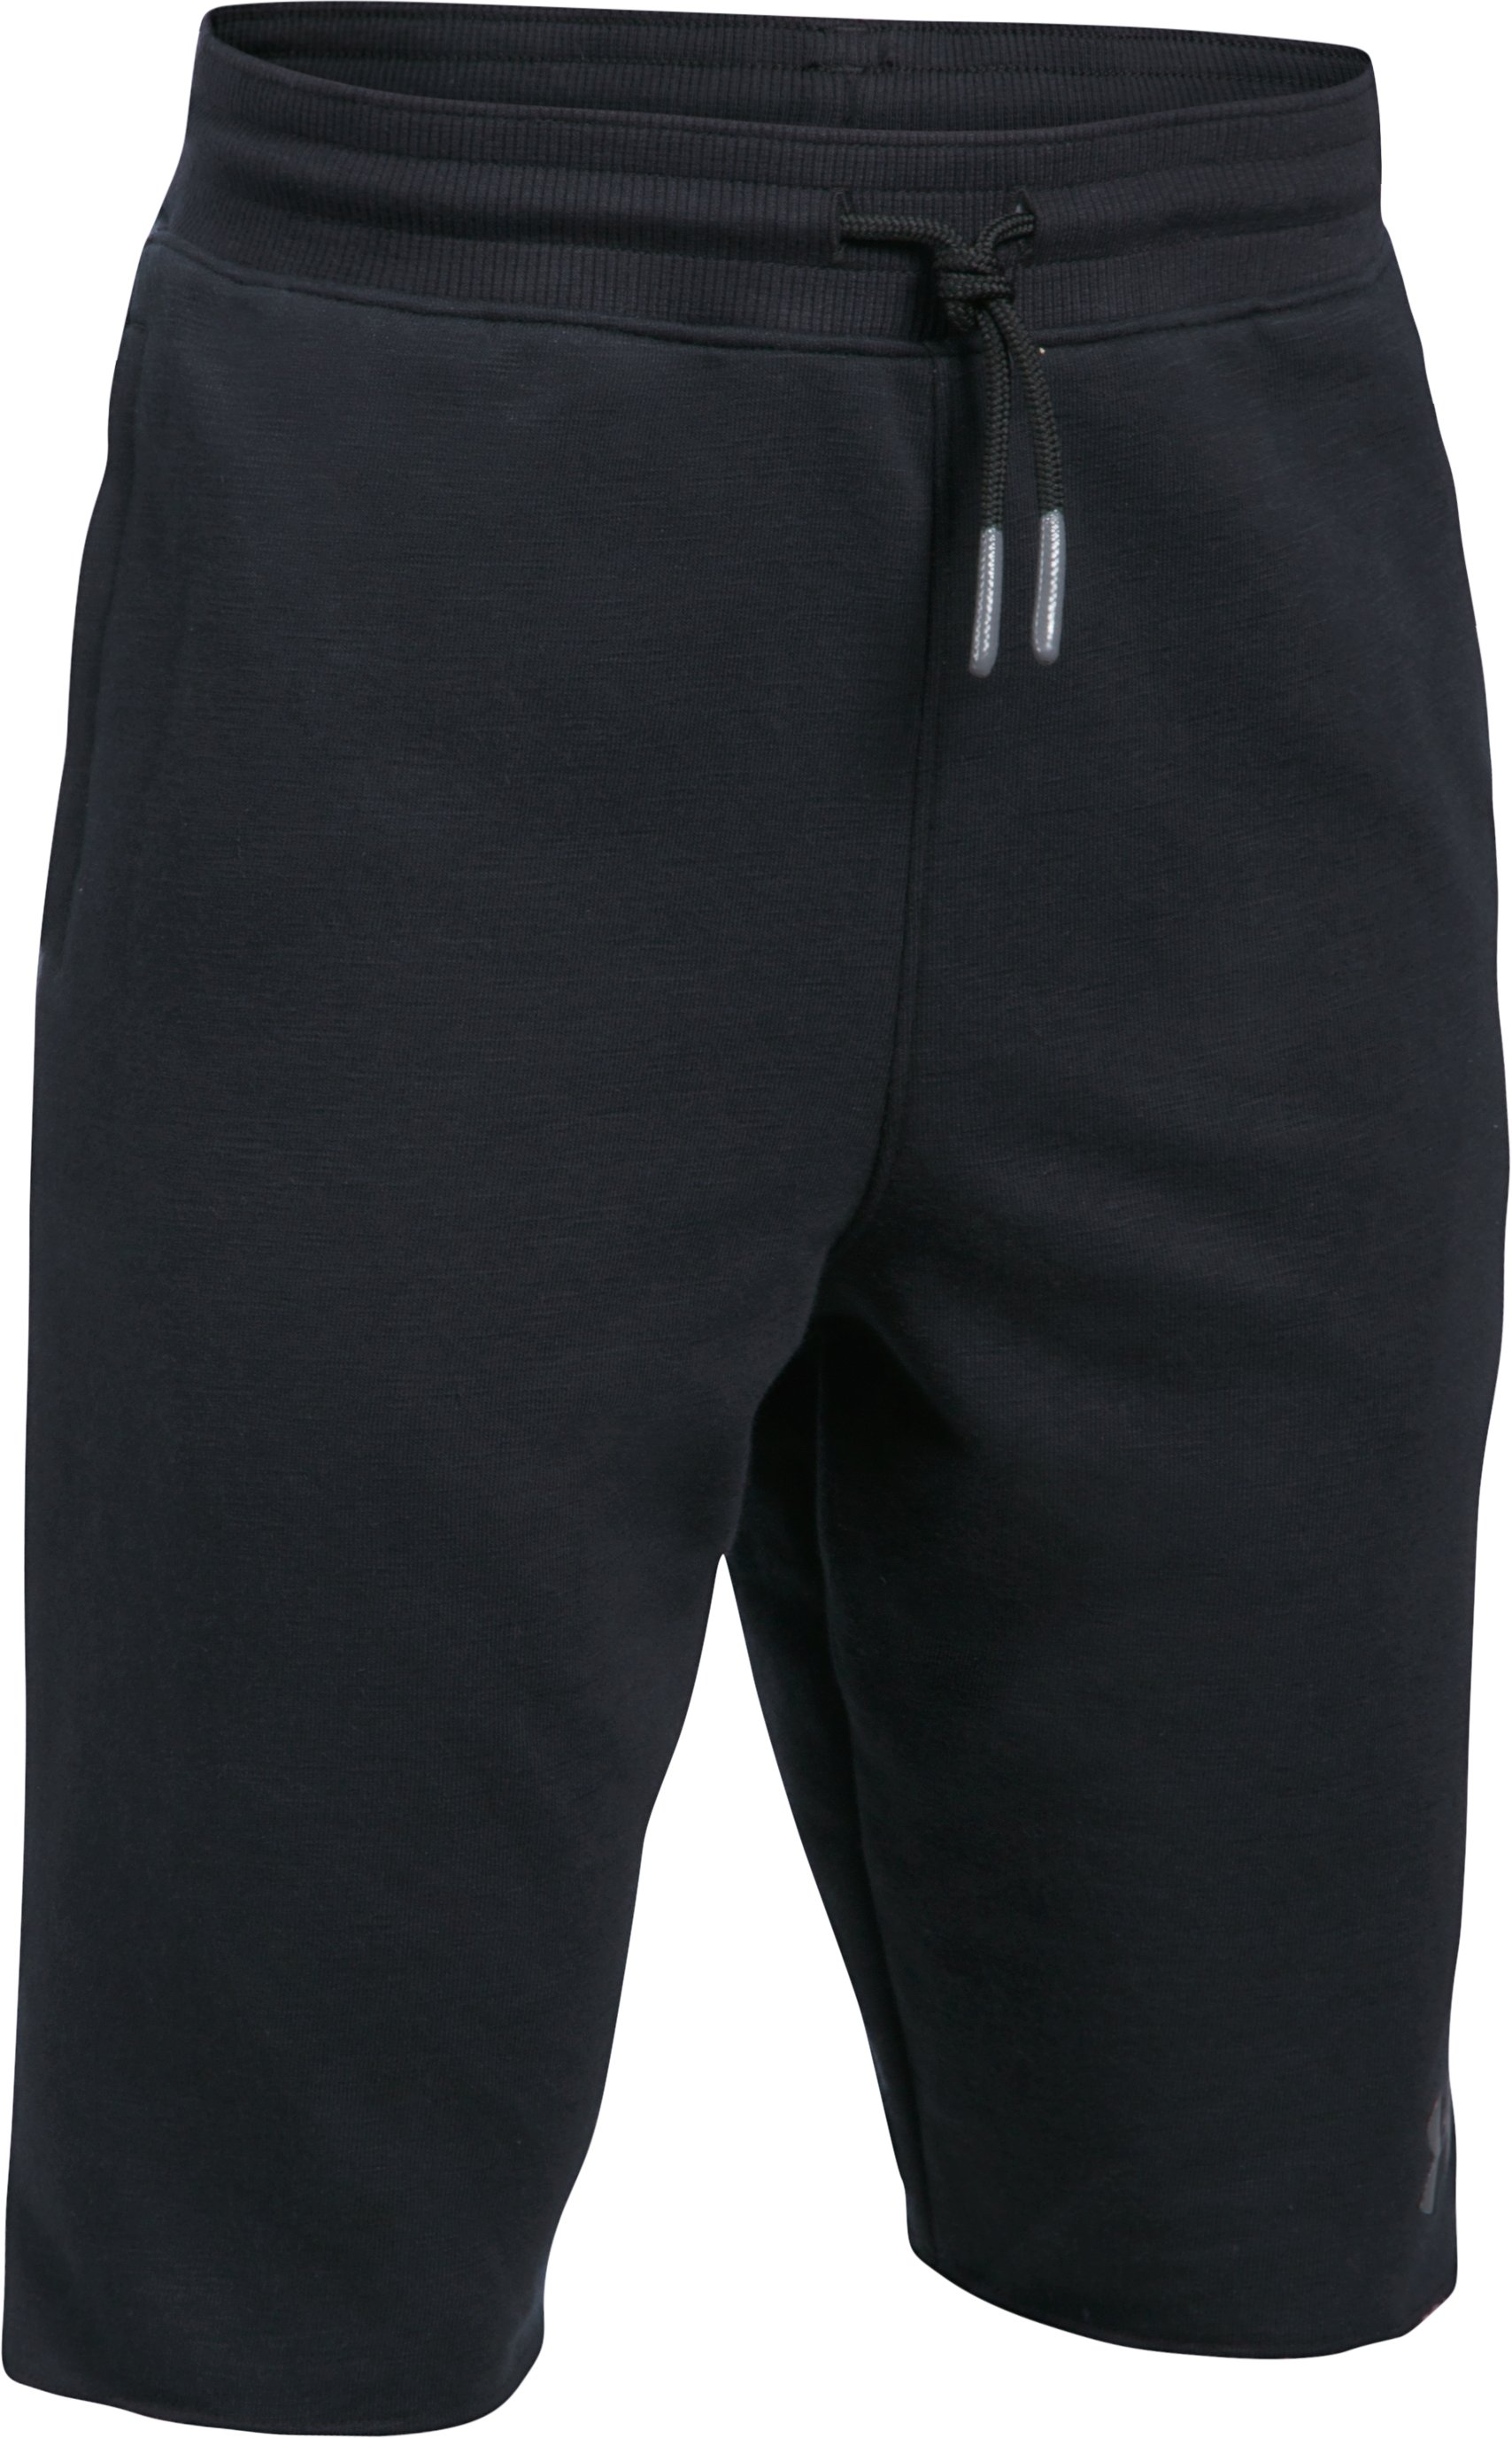 Boys' UA Select Terry Shorts, Black , undefined